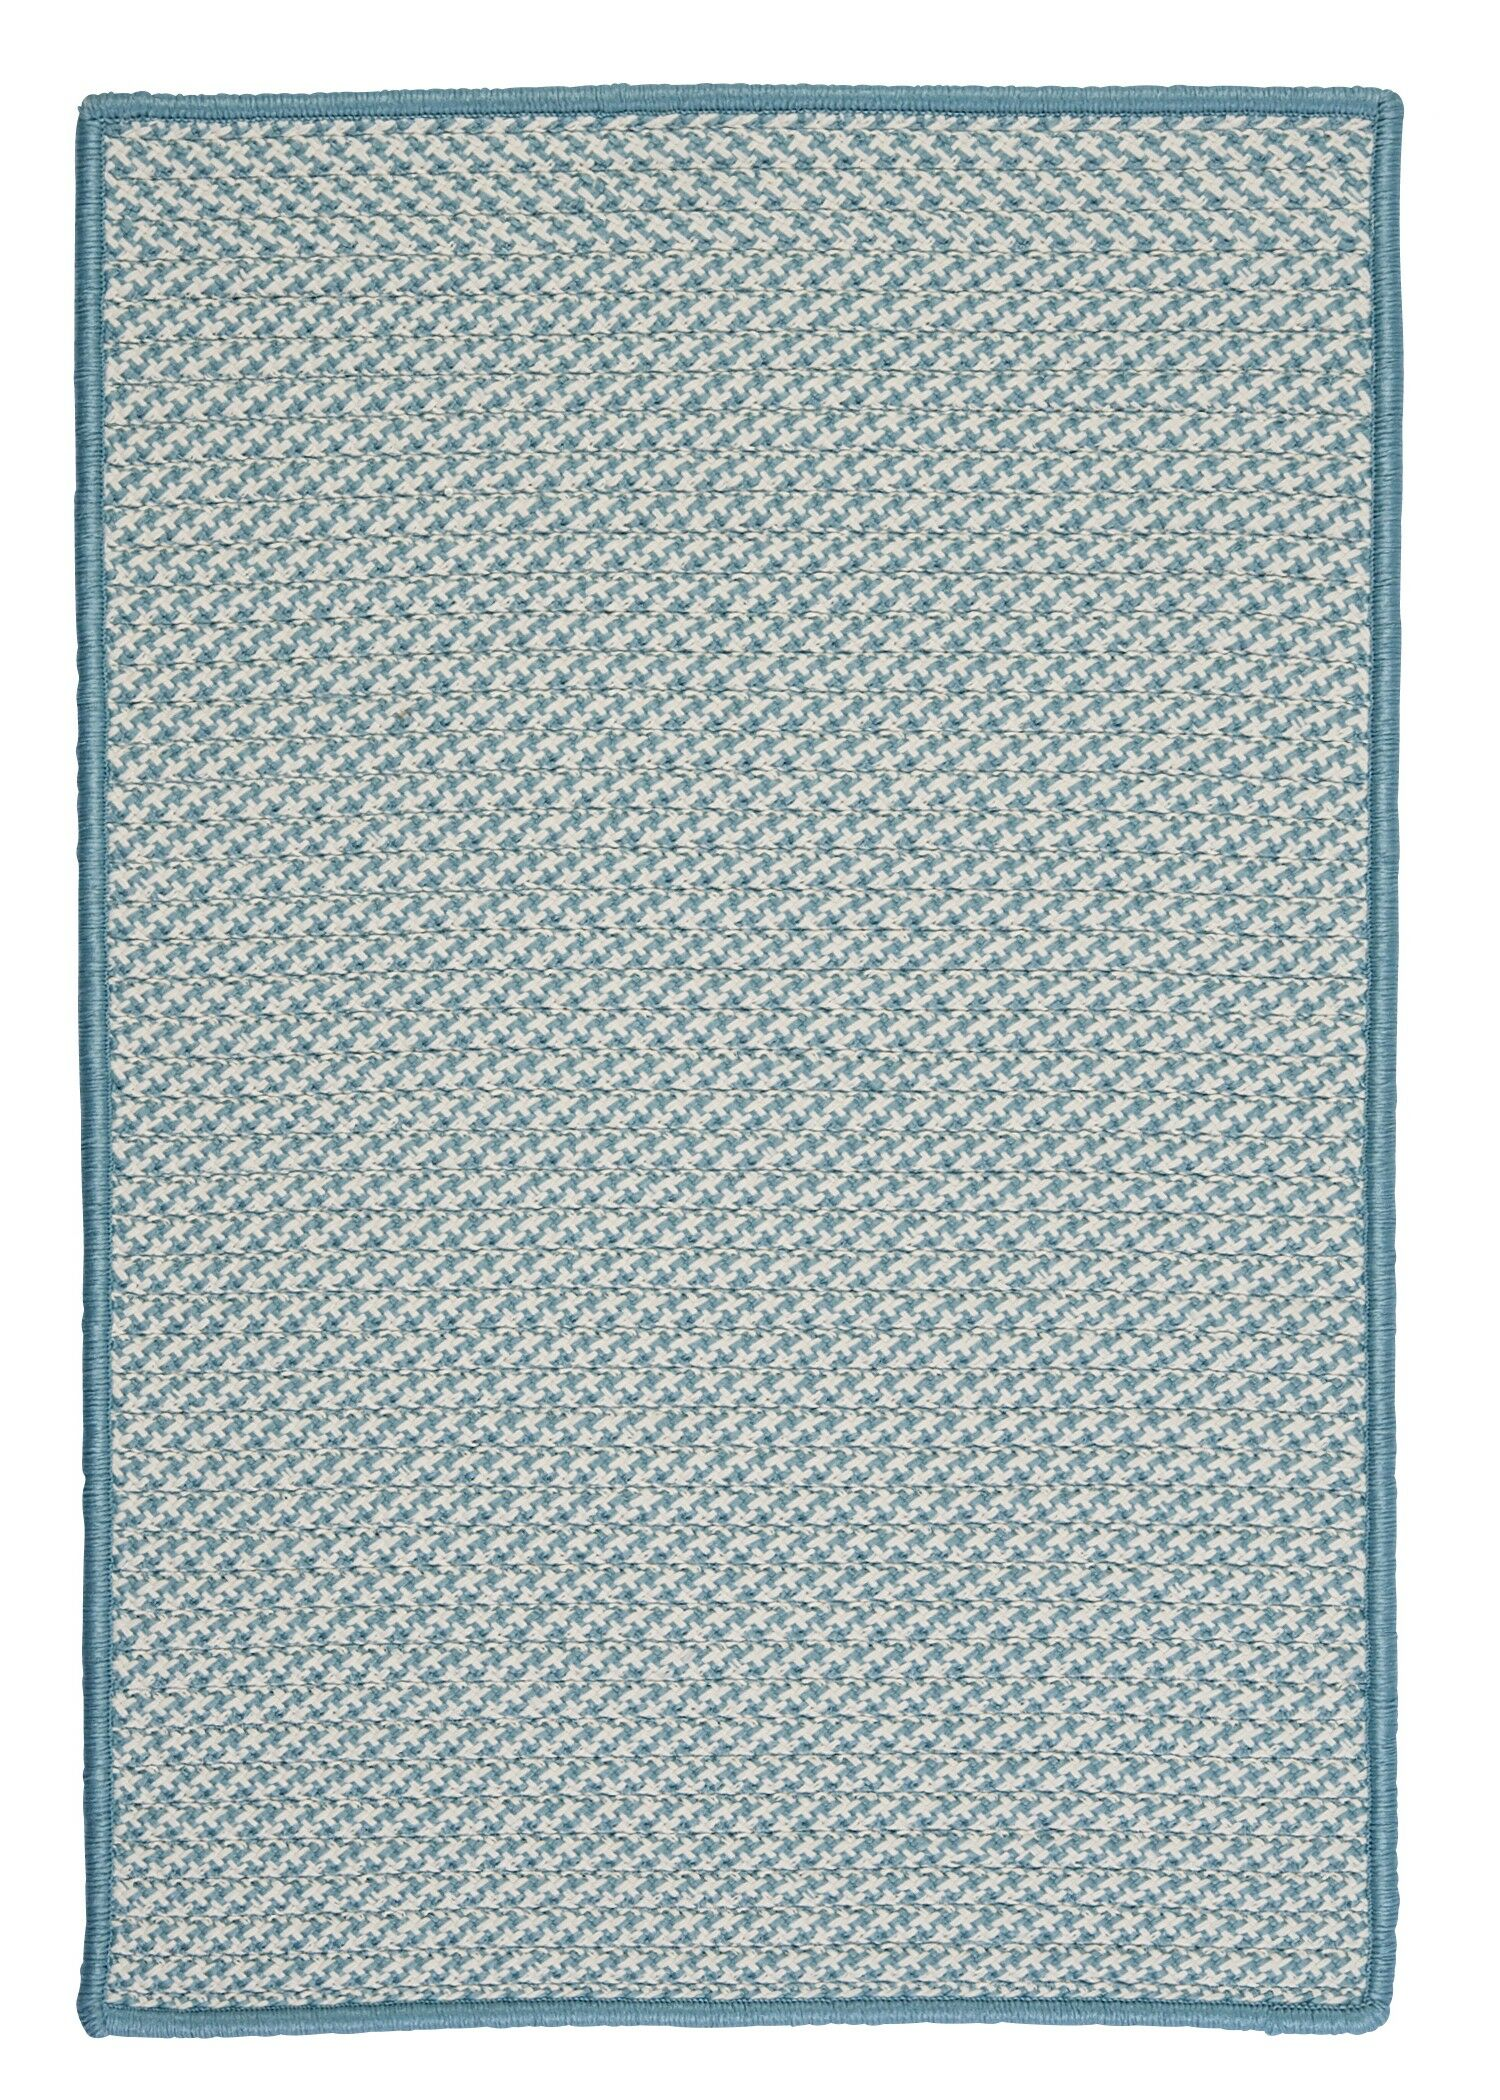 Outdoor Houndstooth Tweed Sea Blue Area Rug Rug Size: Rectangle 7' x 9'